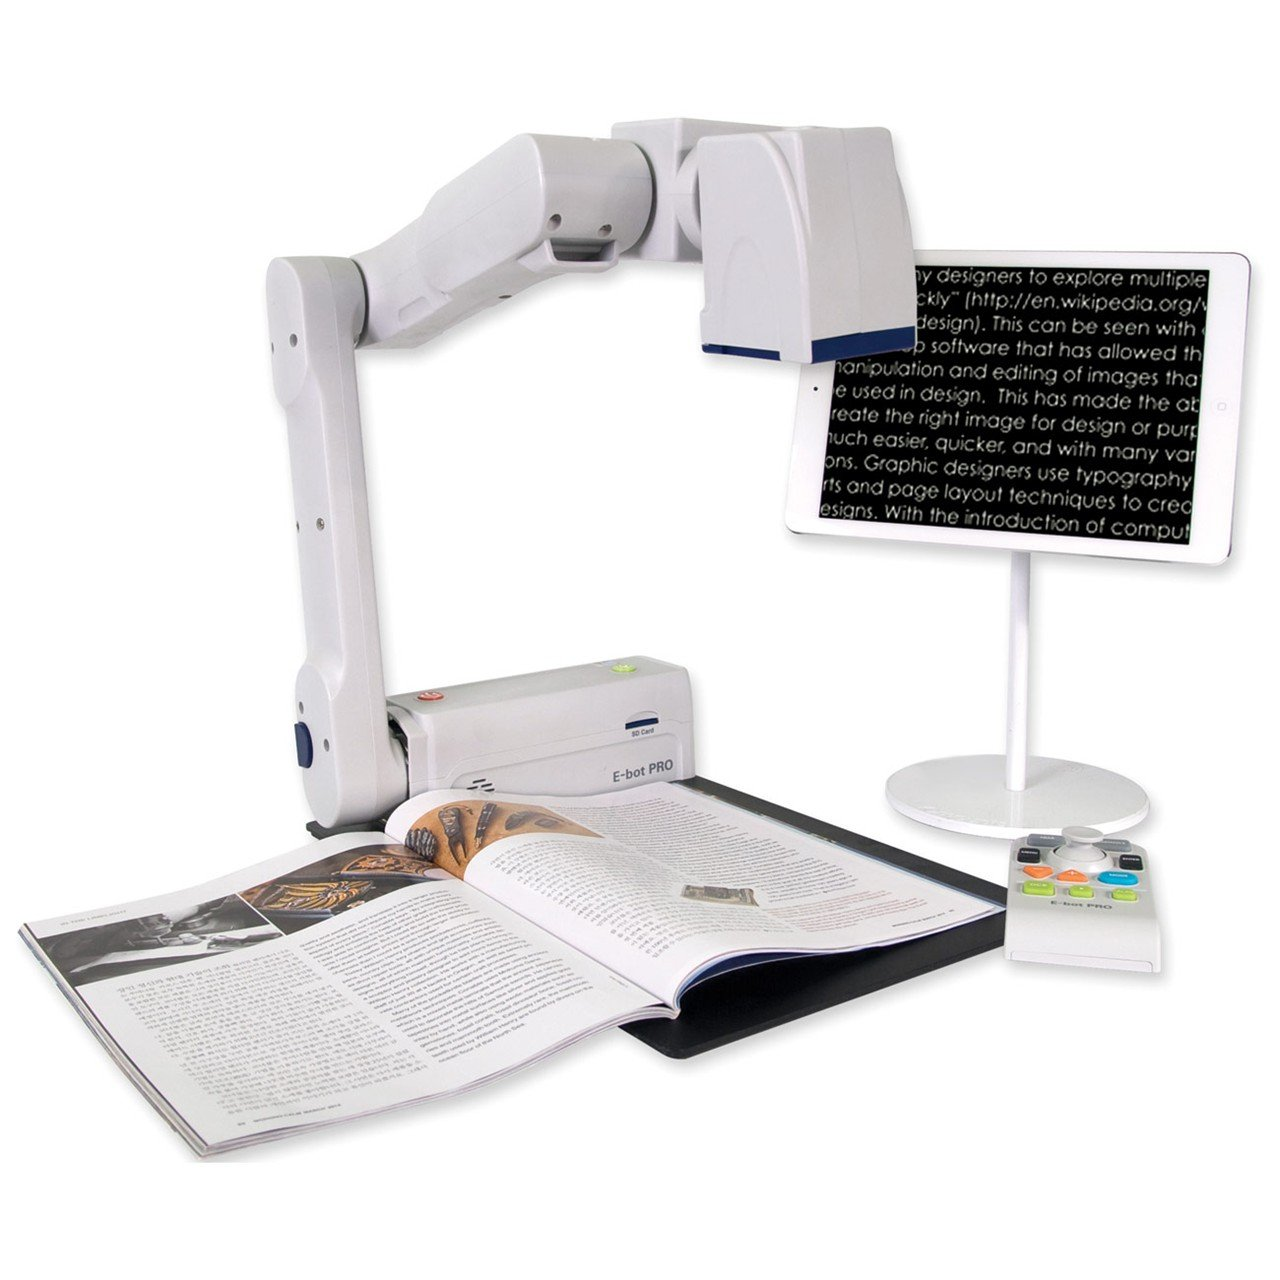 E-bot PRO Portable Magnifier for iPad, Android Tablet, PC or Mac